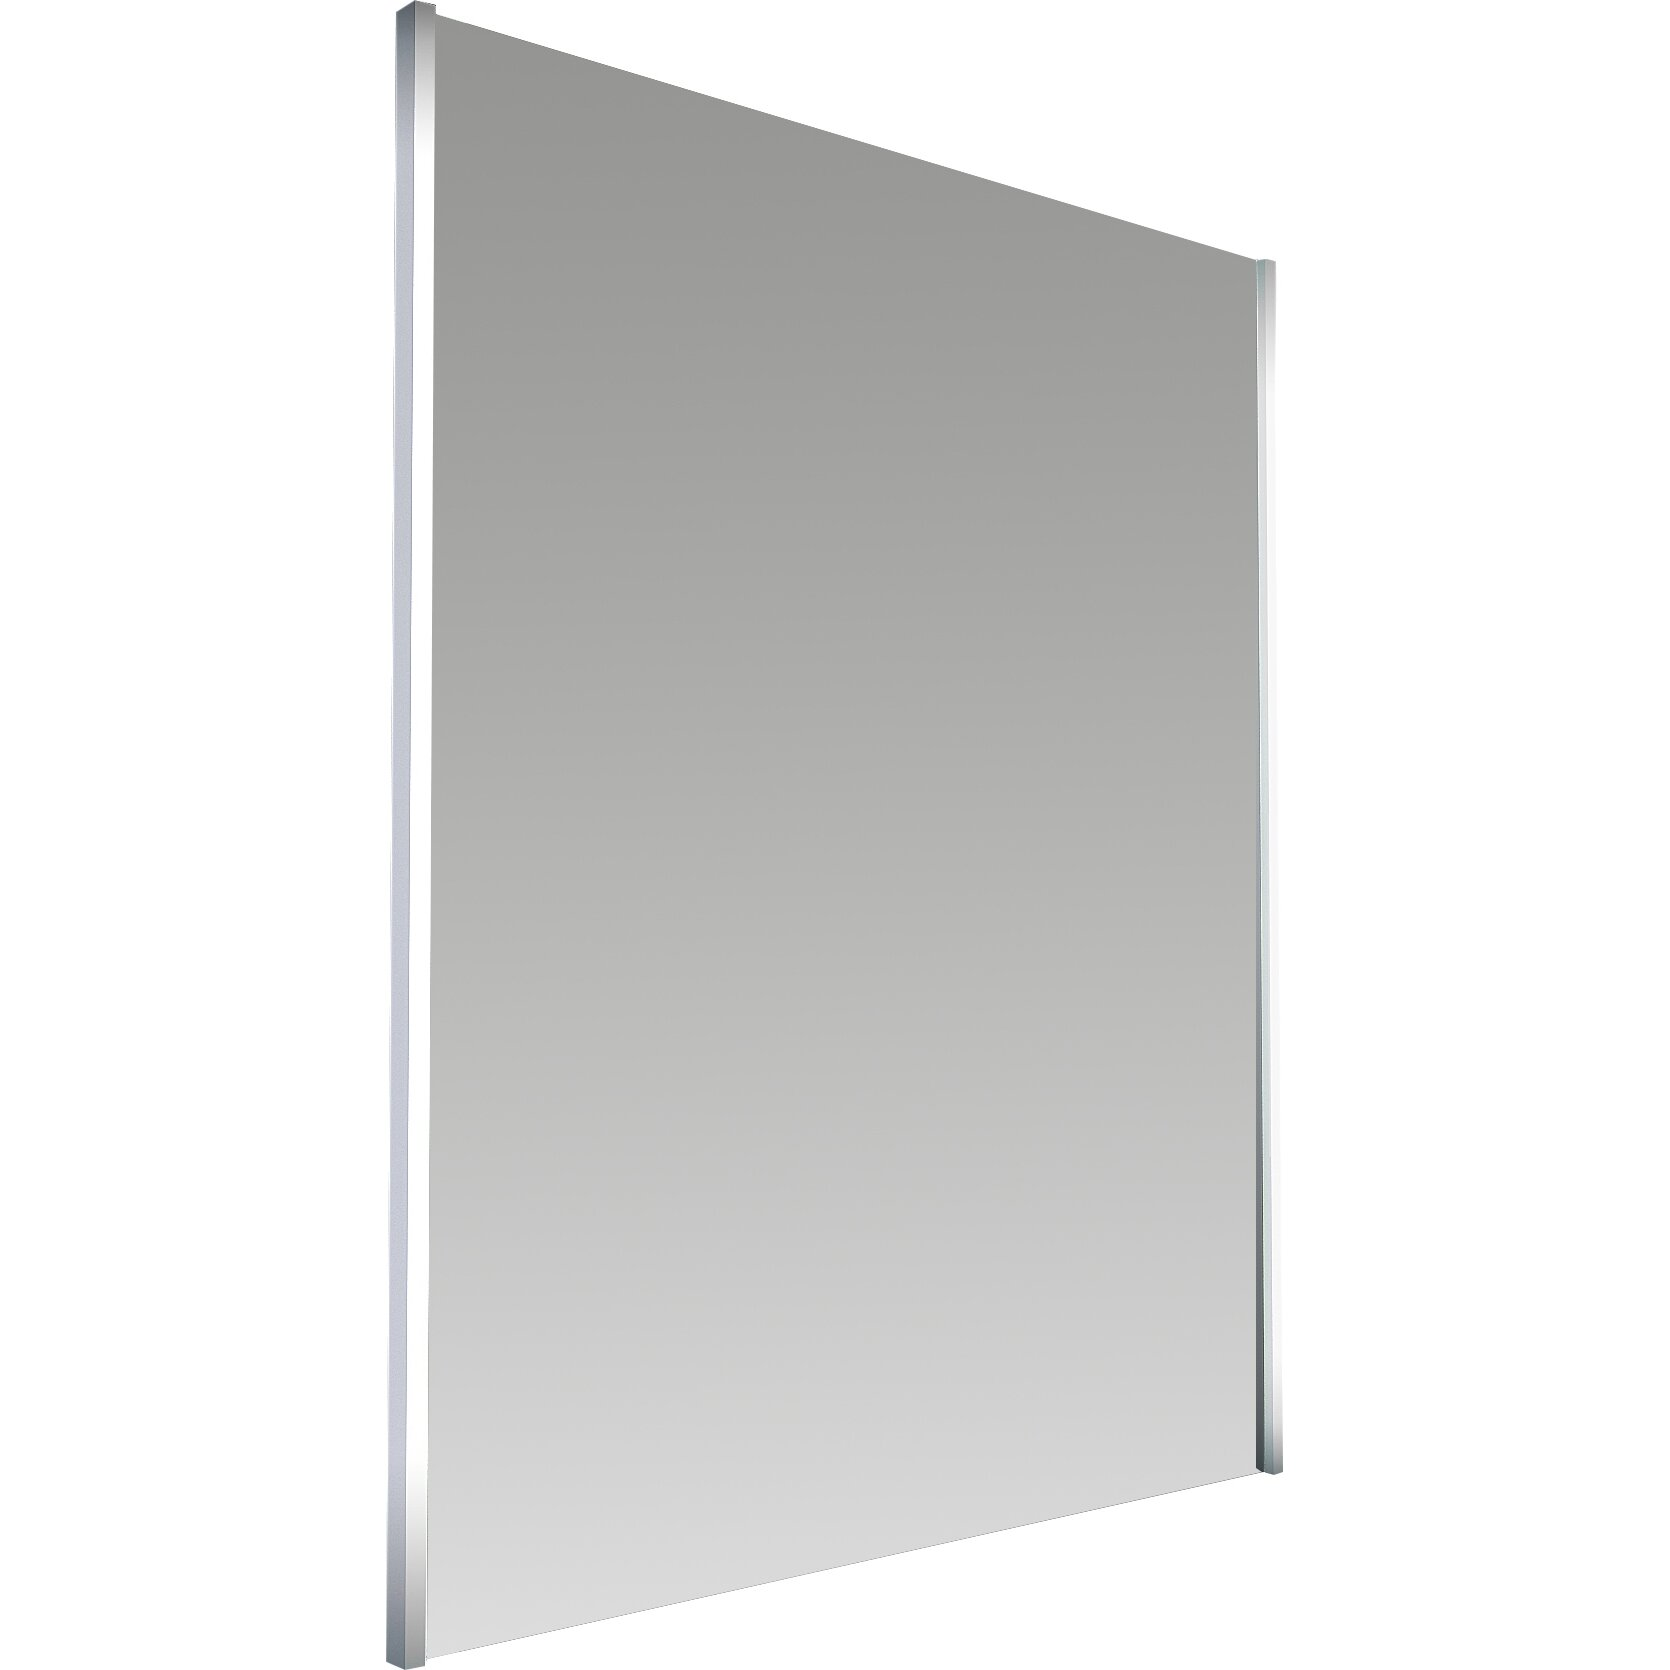 saxby omega led illuminated bathroom mirror with shelf and shaver